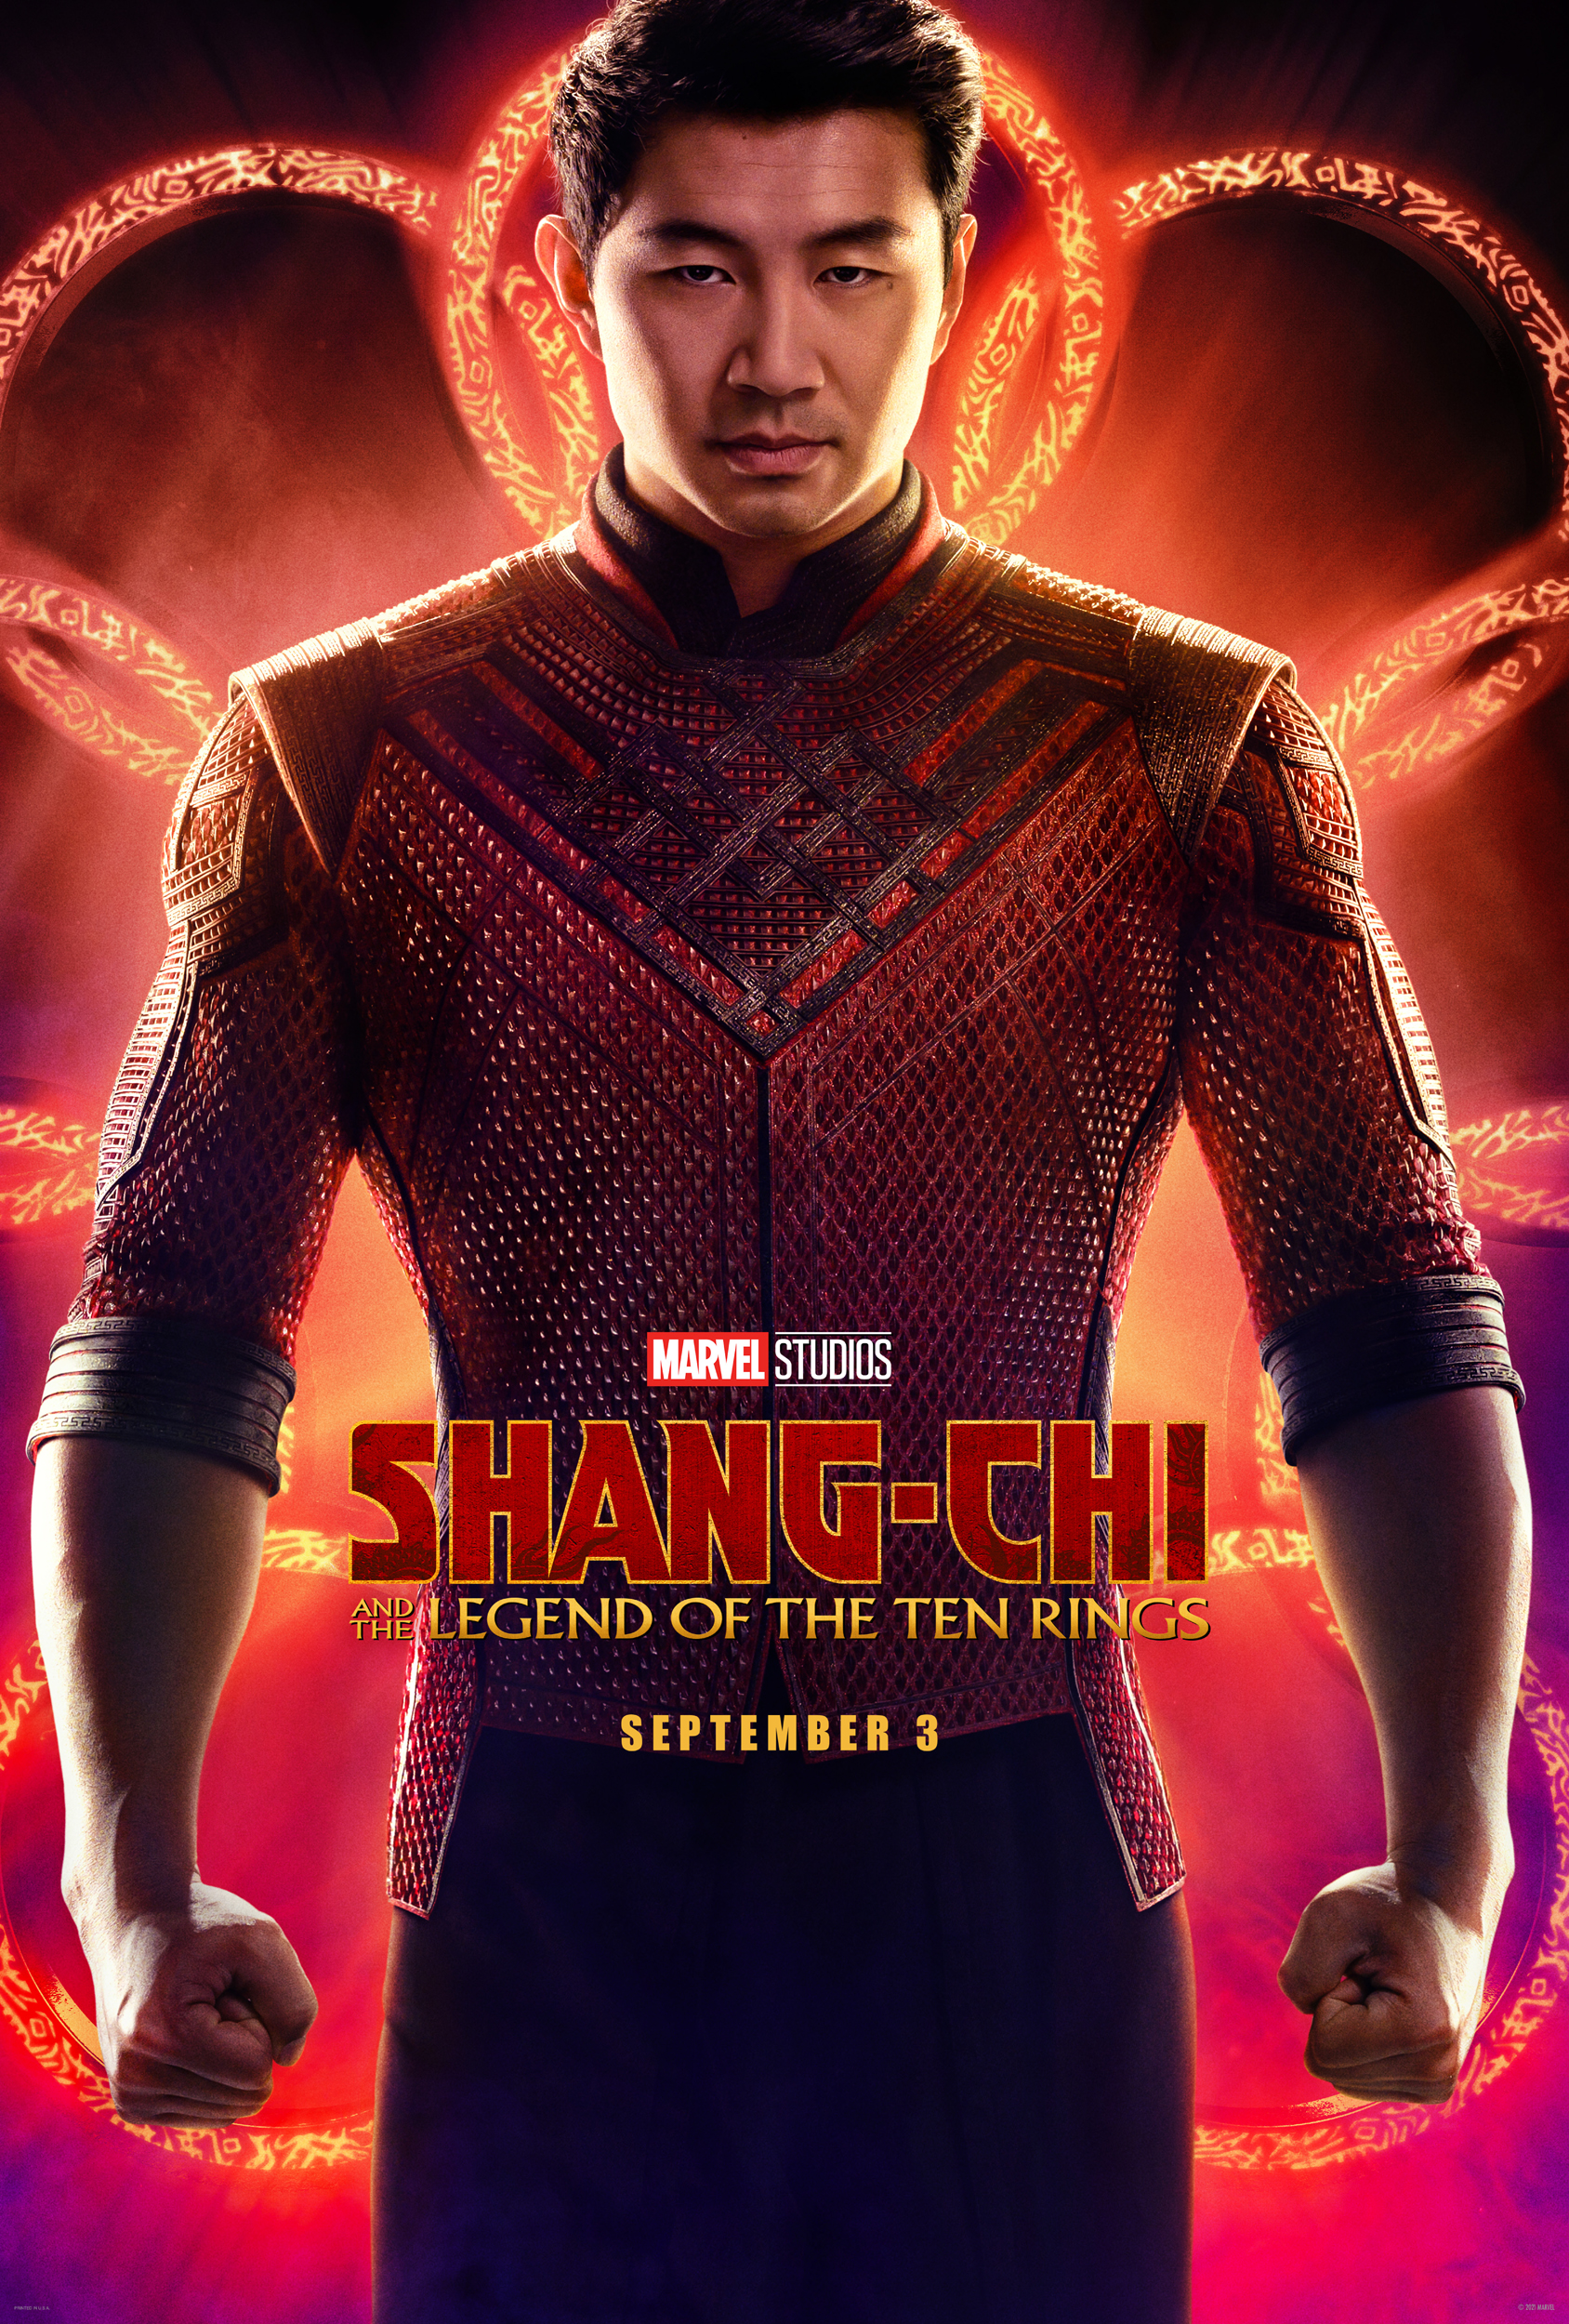 The poster for 'Shang-Chi and the Legend of the Ten Rings' (Photo: Marvel Studios)